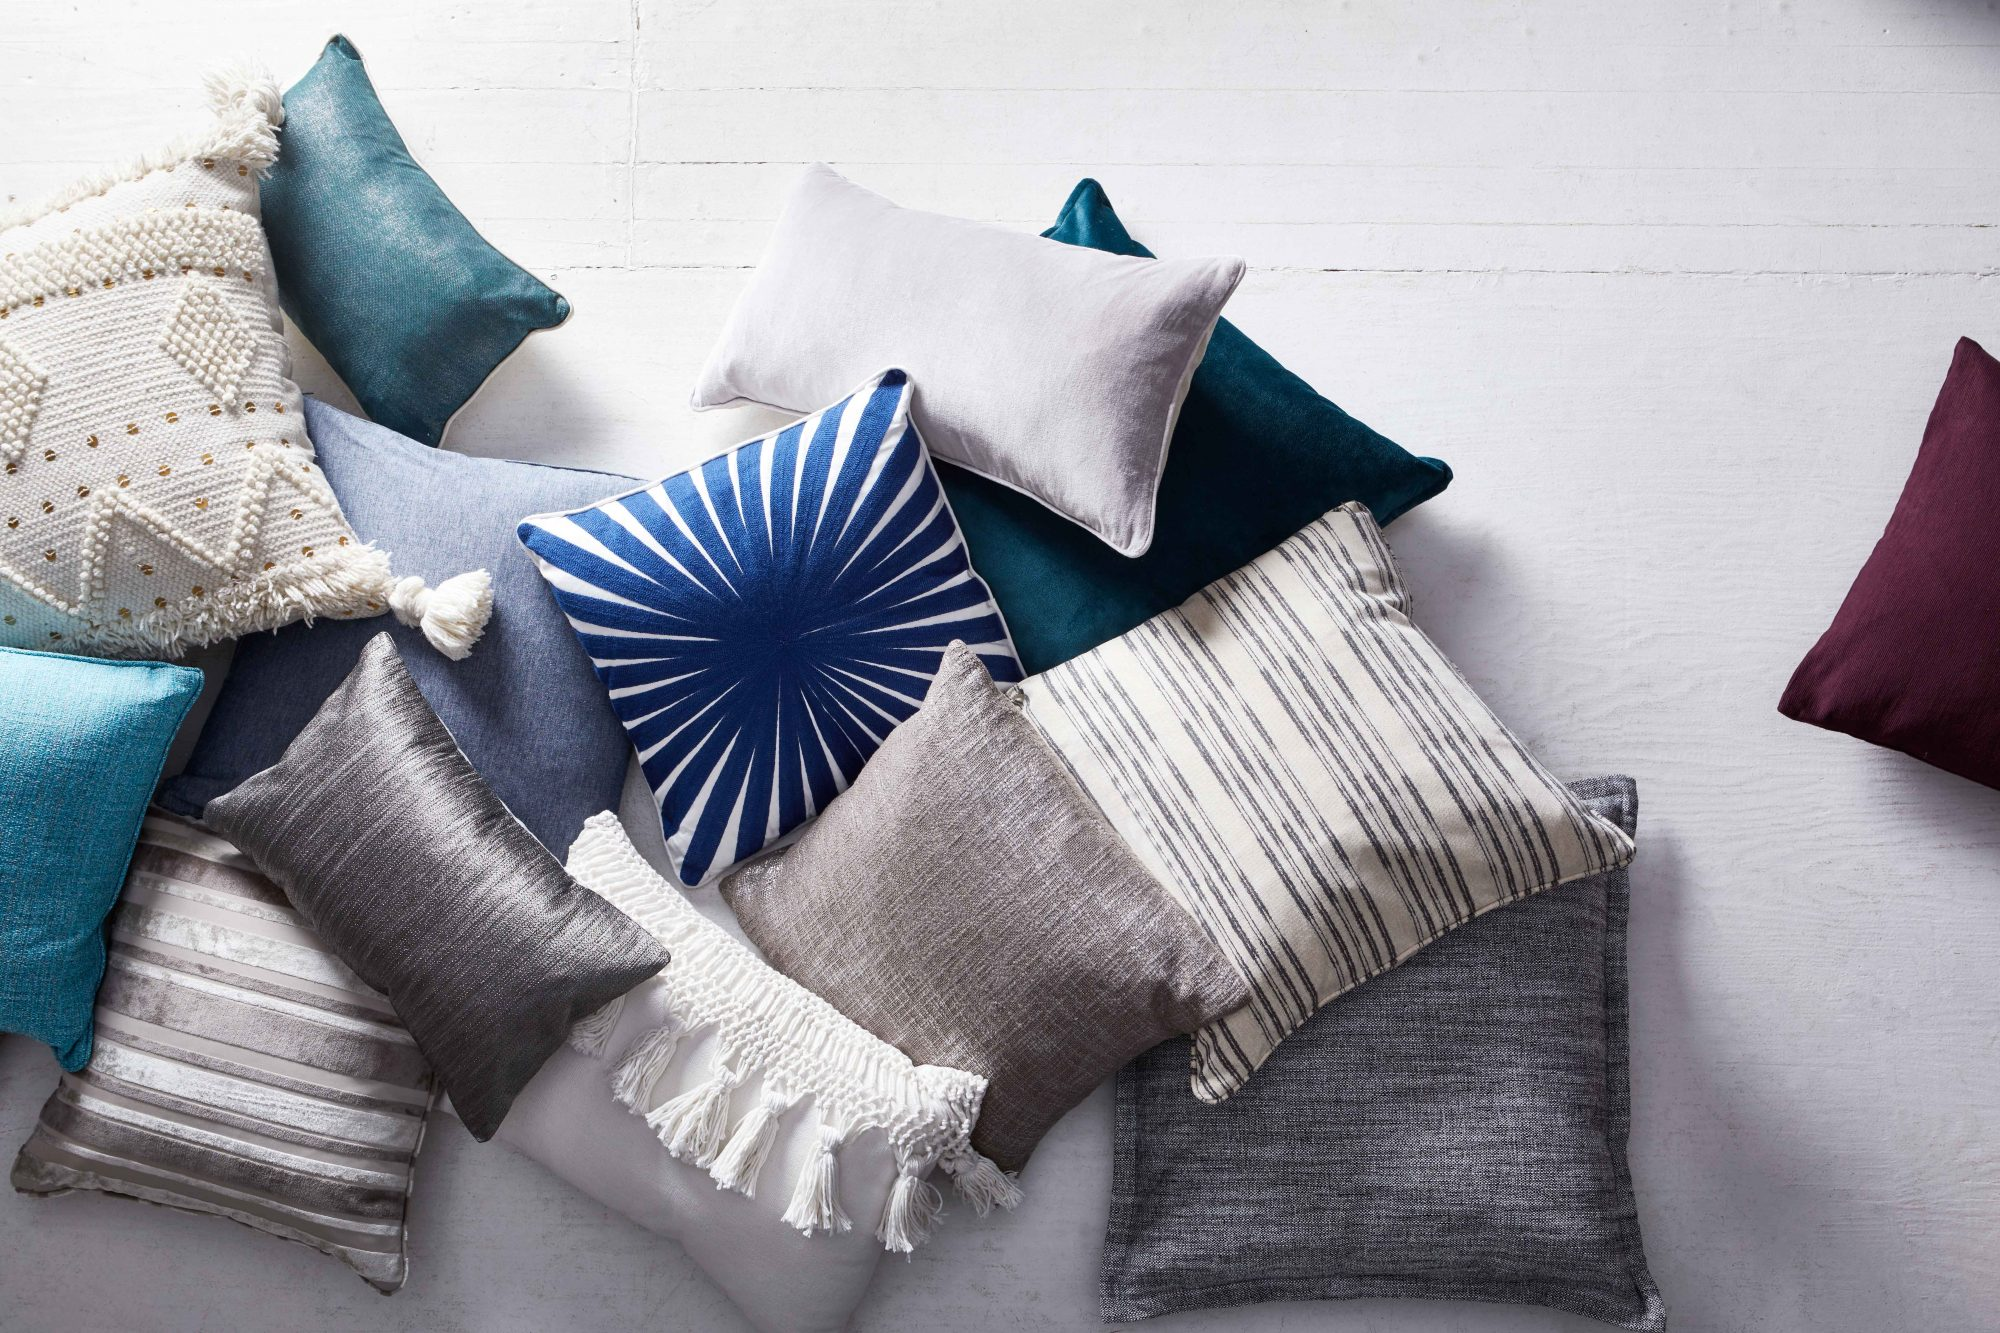 Homesense C1_38335_PILLOWS_1599